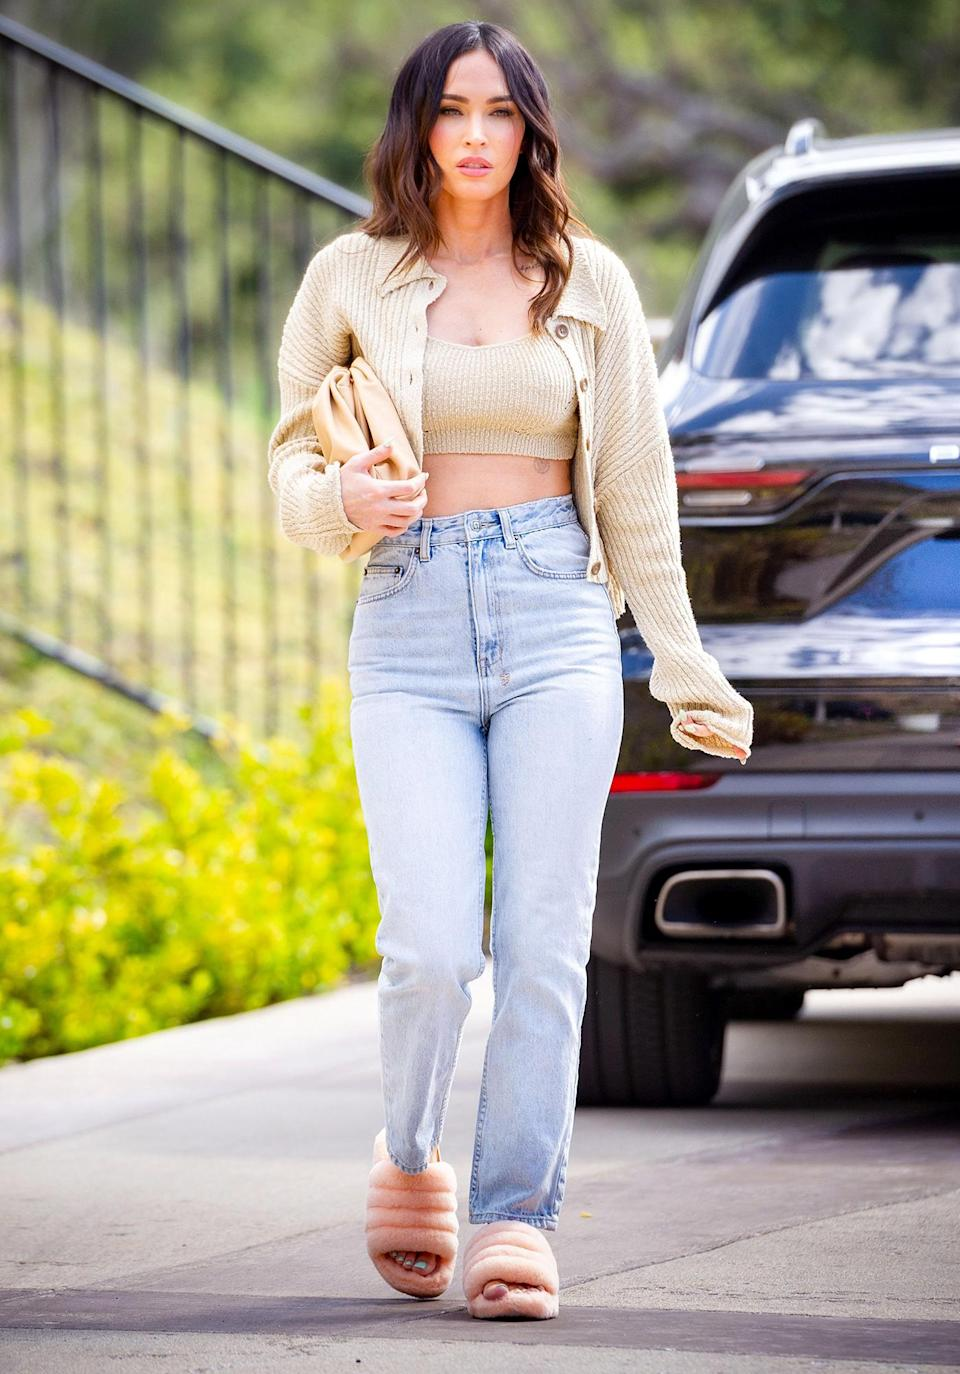 <p>Megan Fox looks gorgeous as she steps out in a cropped top, sweater and jeans while out in L.A. on Thursday.</p>